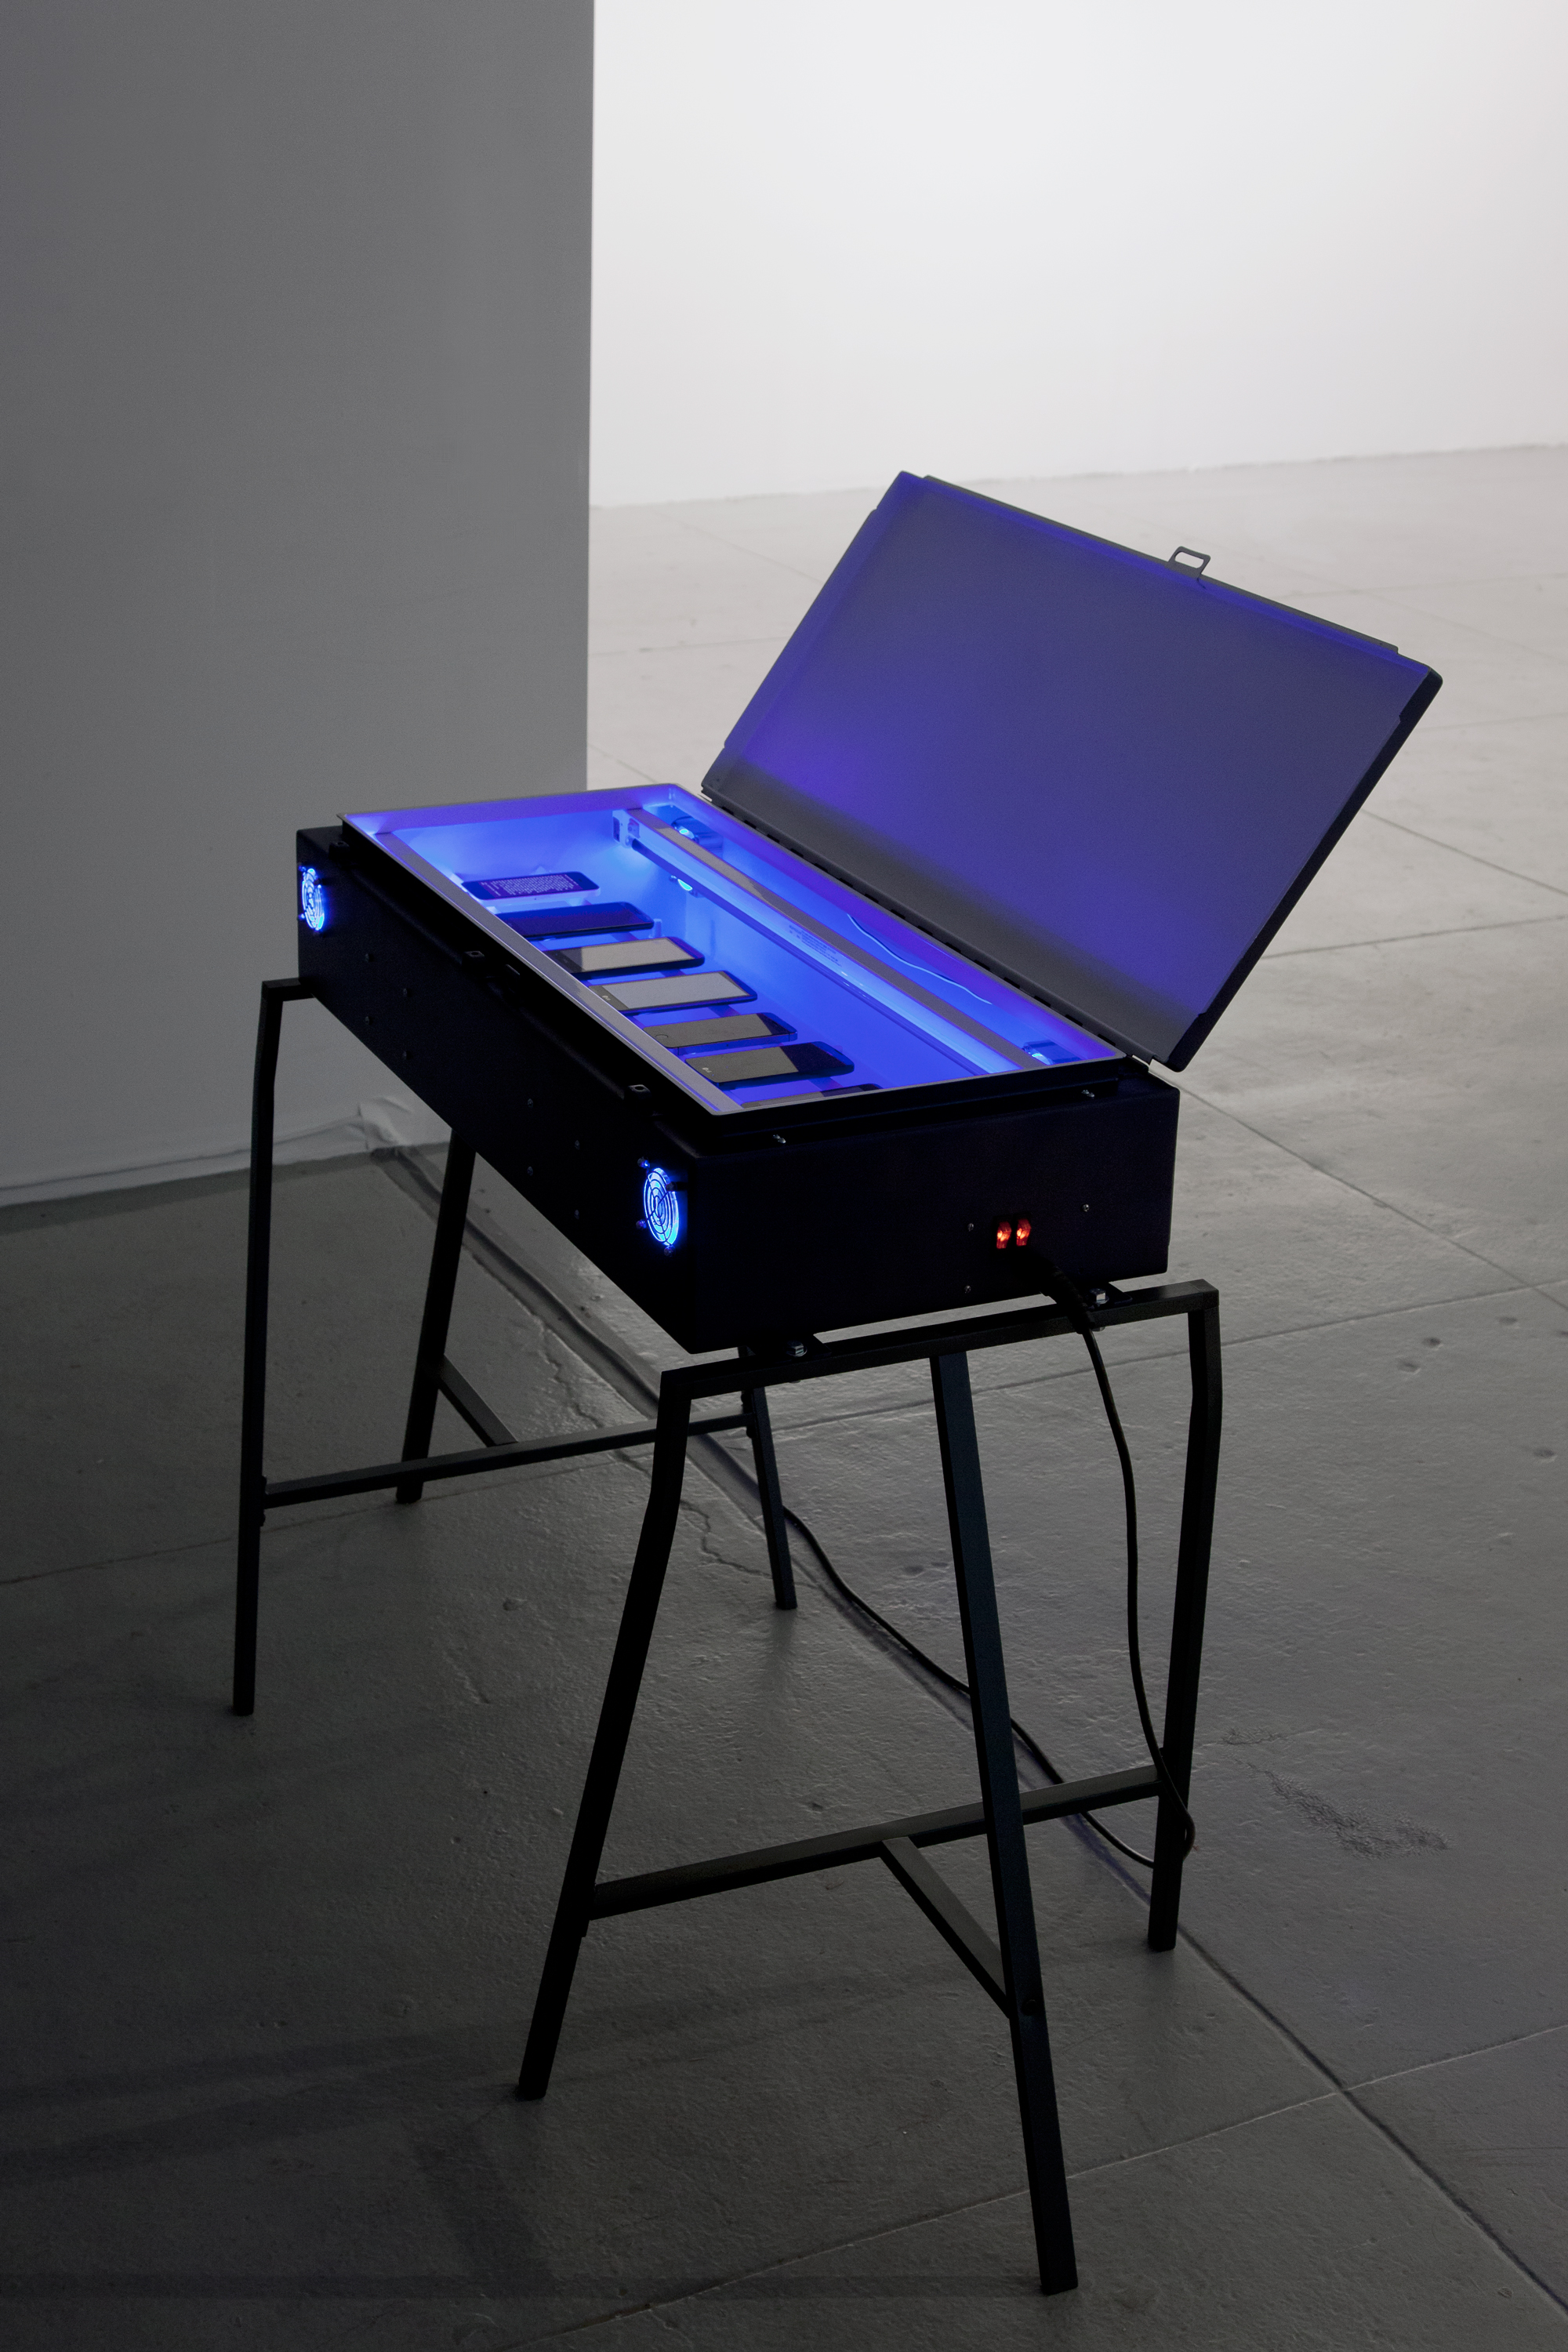 The Black Critique (Towards the Wild Beyond),  2017 Steel electrical enclosure, paint, germicidal UV light bulbs, case fans, USB outlets, electrical wire, power cord, smartphones (Elizabeth Foundation for the Arts, NY), Photo: Martha Fleming-Ives